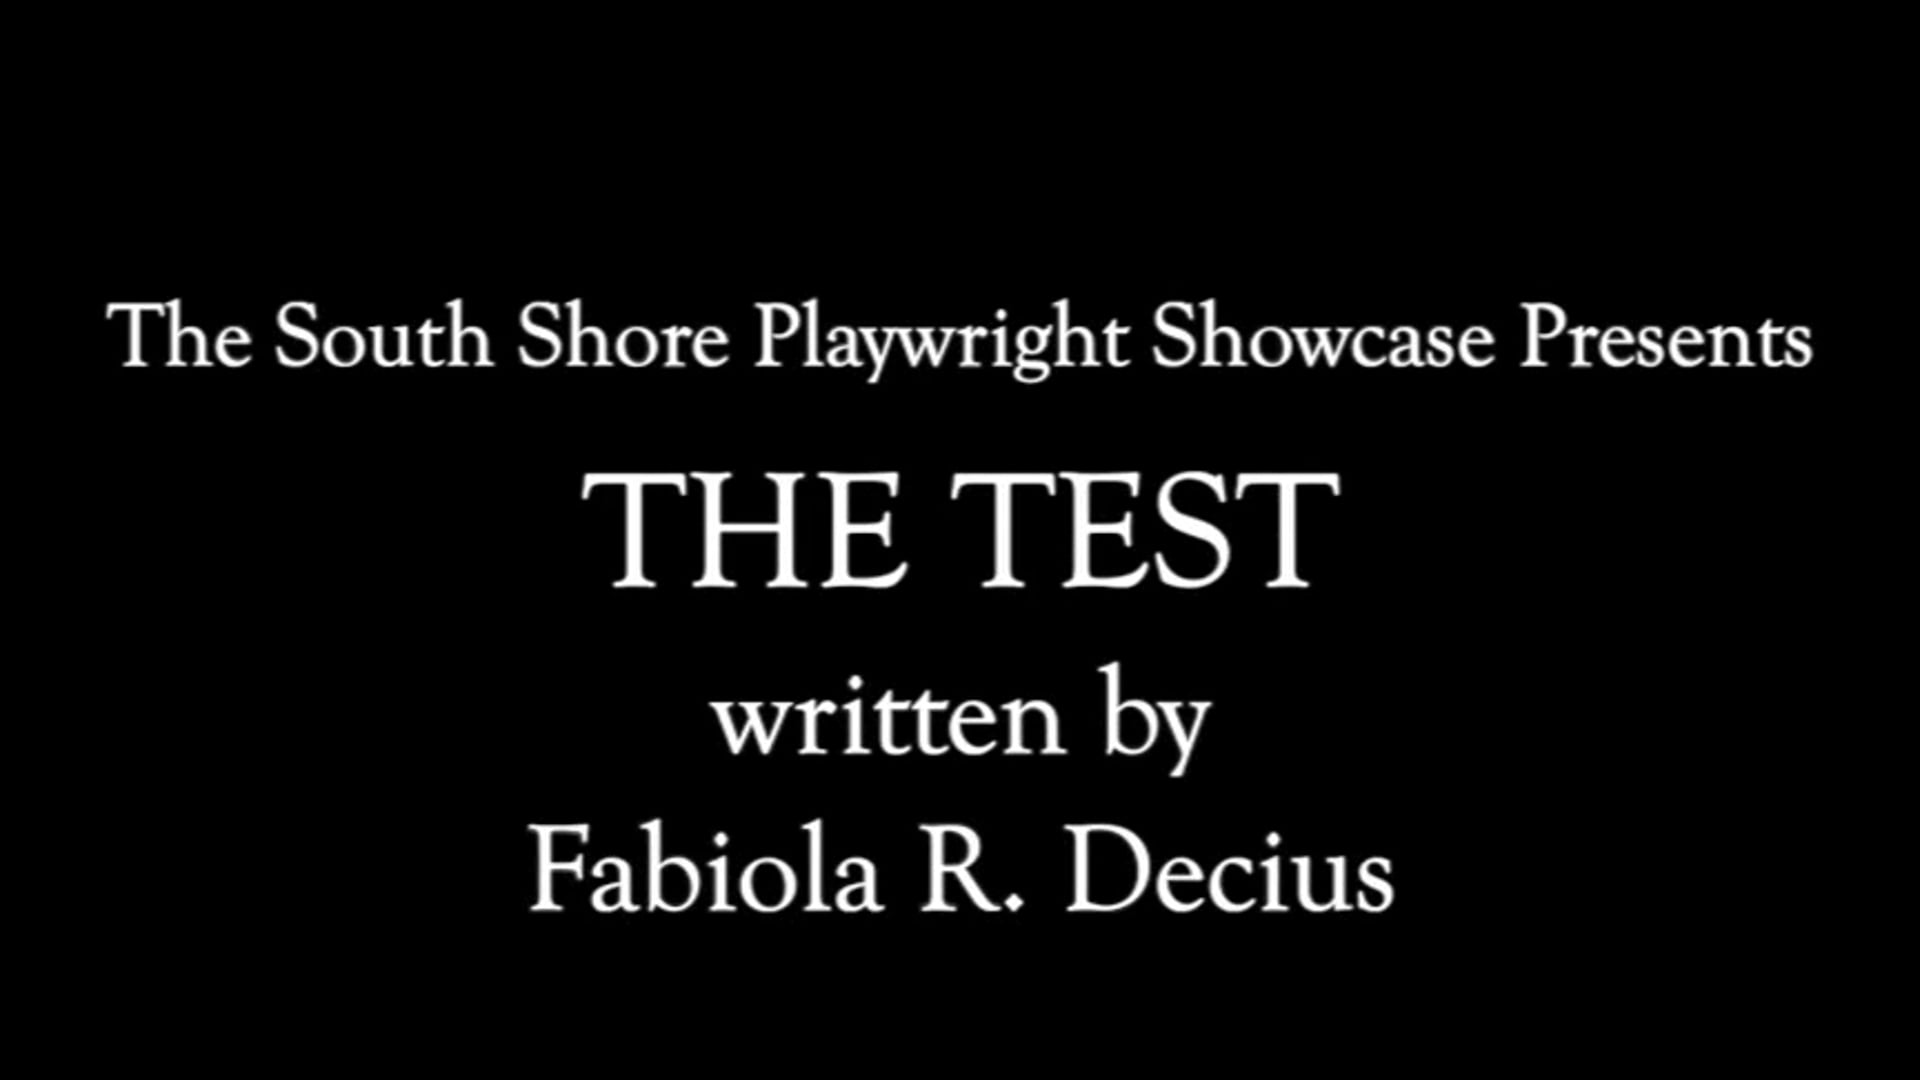 The Test by Fabiola R. Decius (South Shore Playwright Showcase)